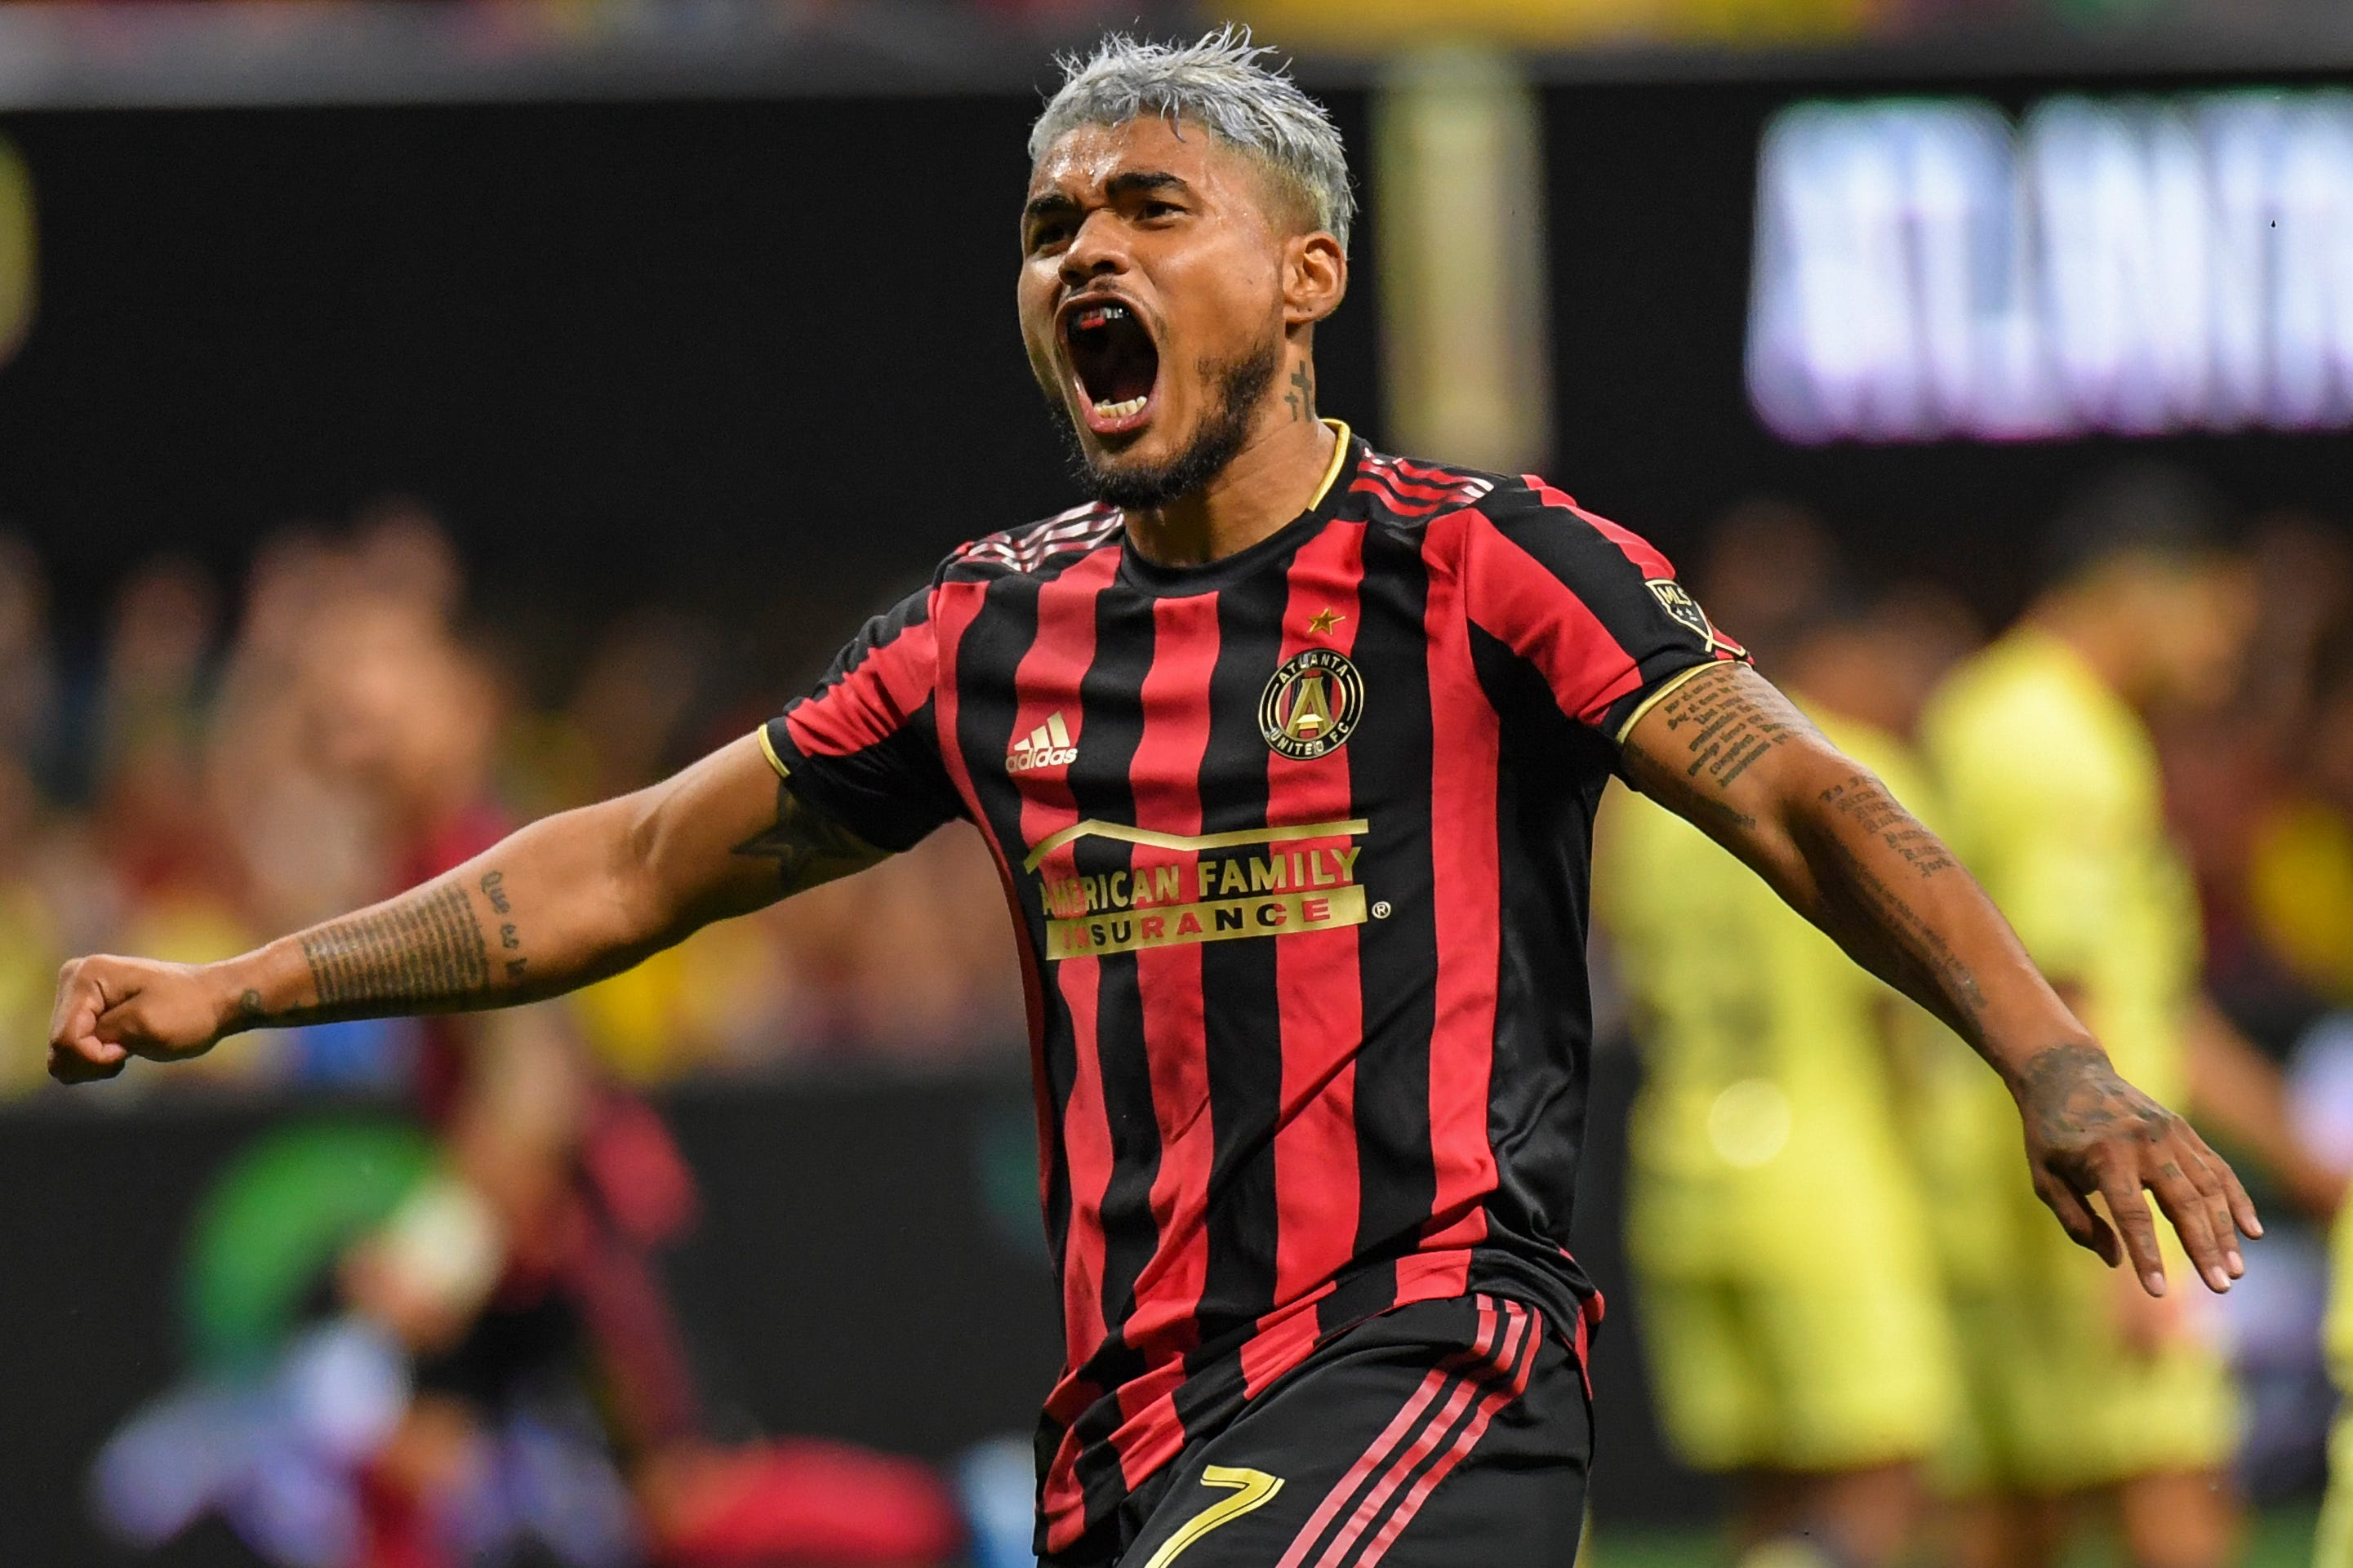 MLS 2020 top story lines: Atlanta United, LAFC chasing reigning champion Seattle Sounders